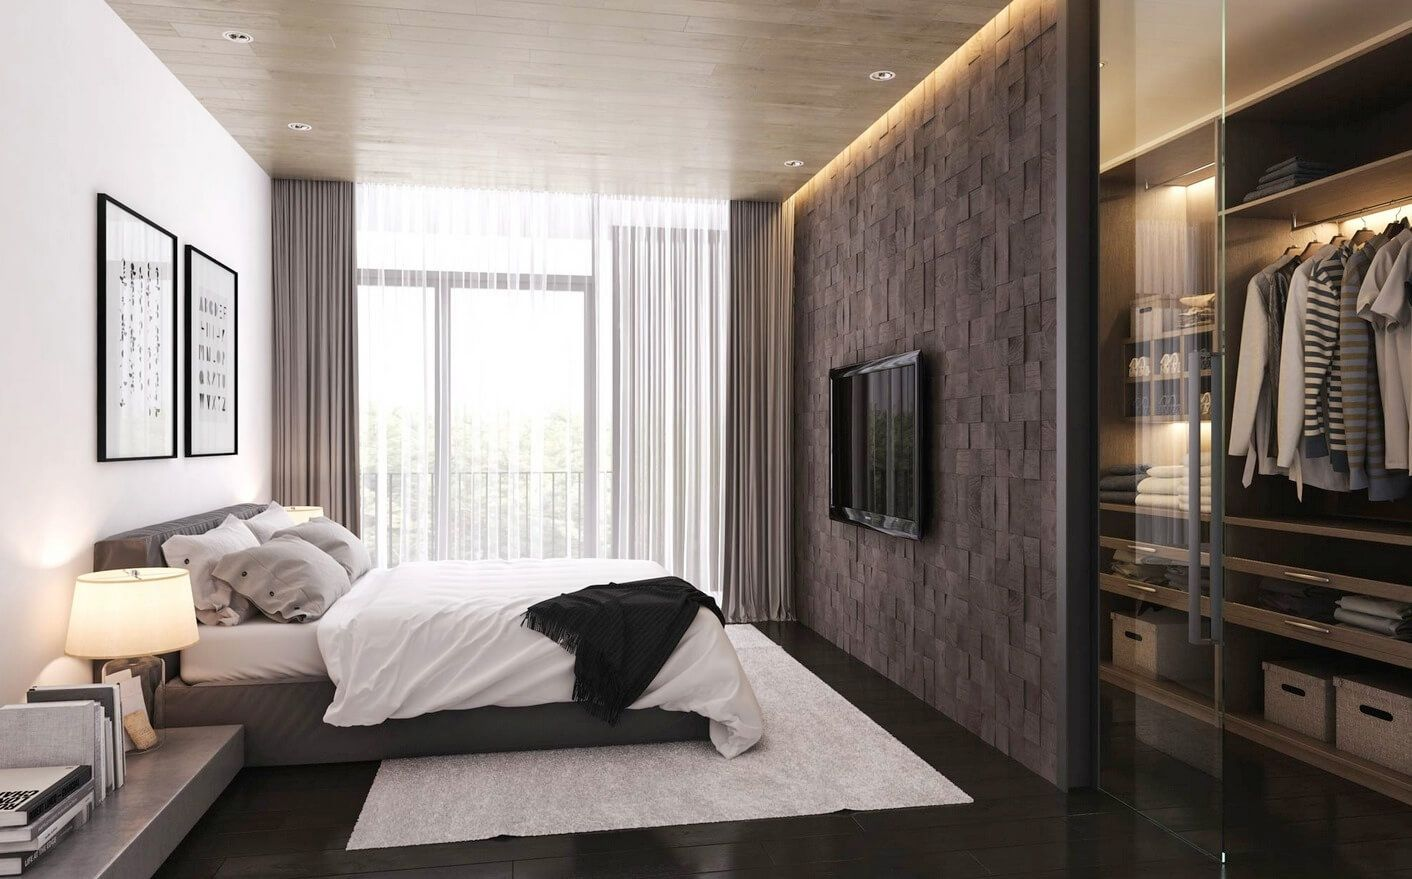 Best Hdb Bedroom Decor Ideas That Are Both Cozy And Glamorous Sghomemaker Simple Bedroom Design Modern Bedroom Design Stylish Bedroom